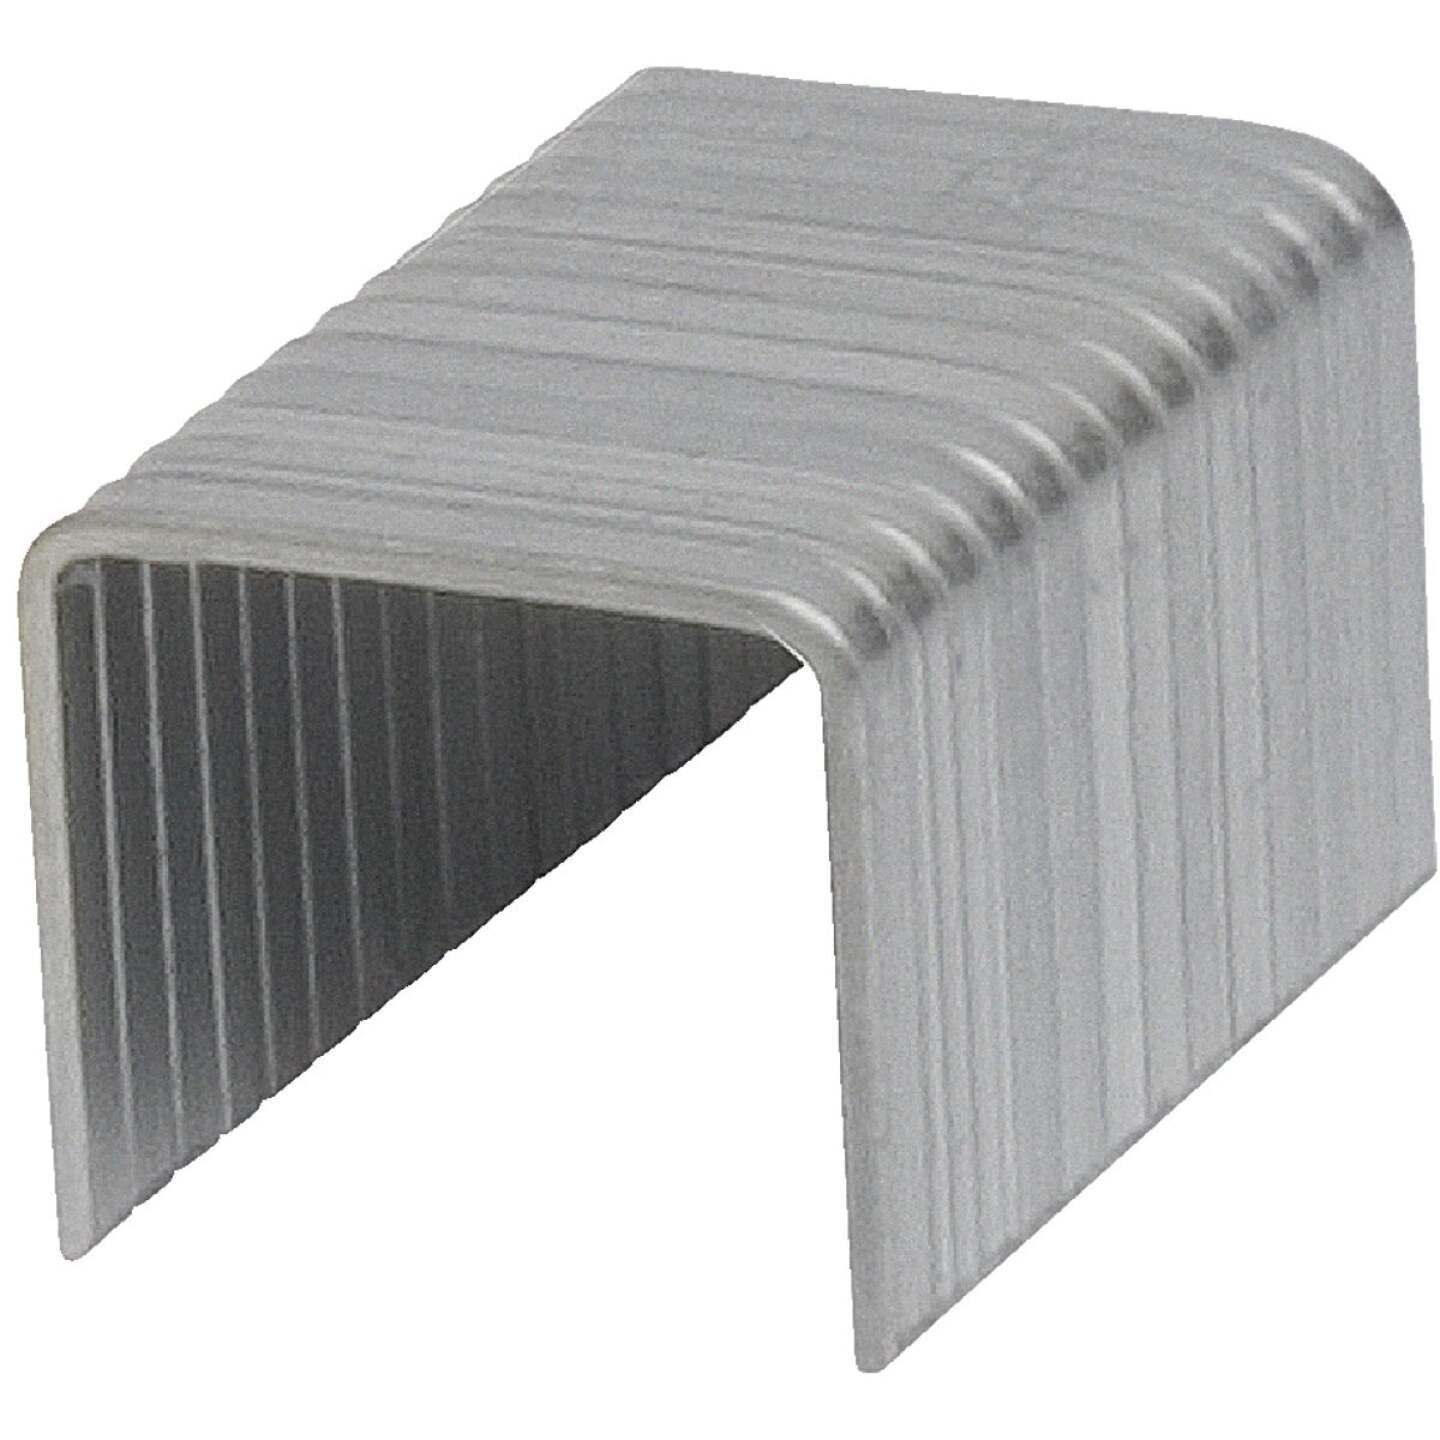 Channellock No. 6 Hammer Tacker Staple, 5/16 In. (5000-Count) Image 2